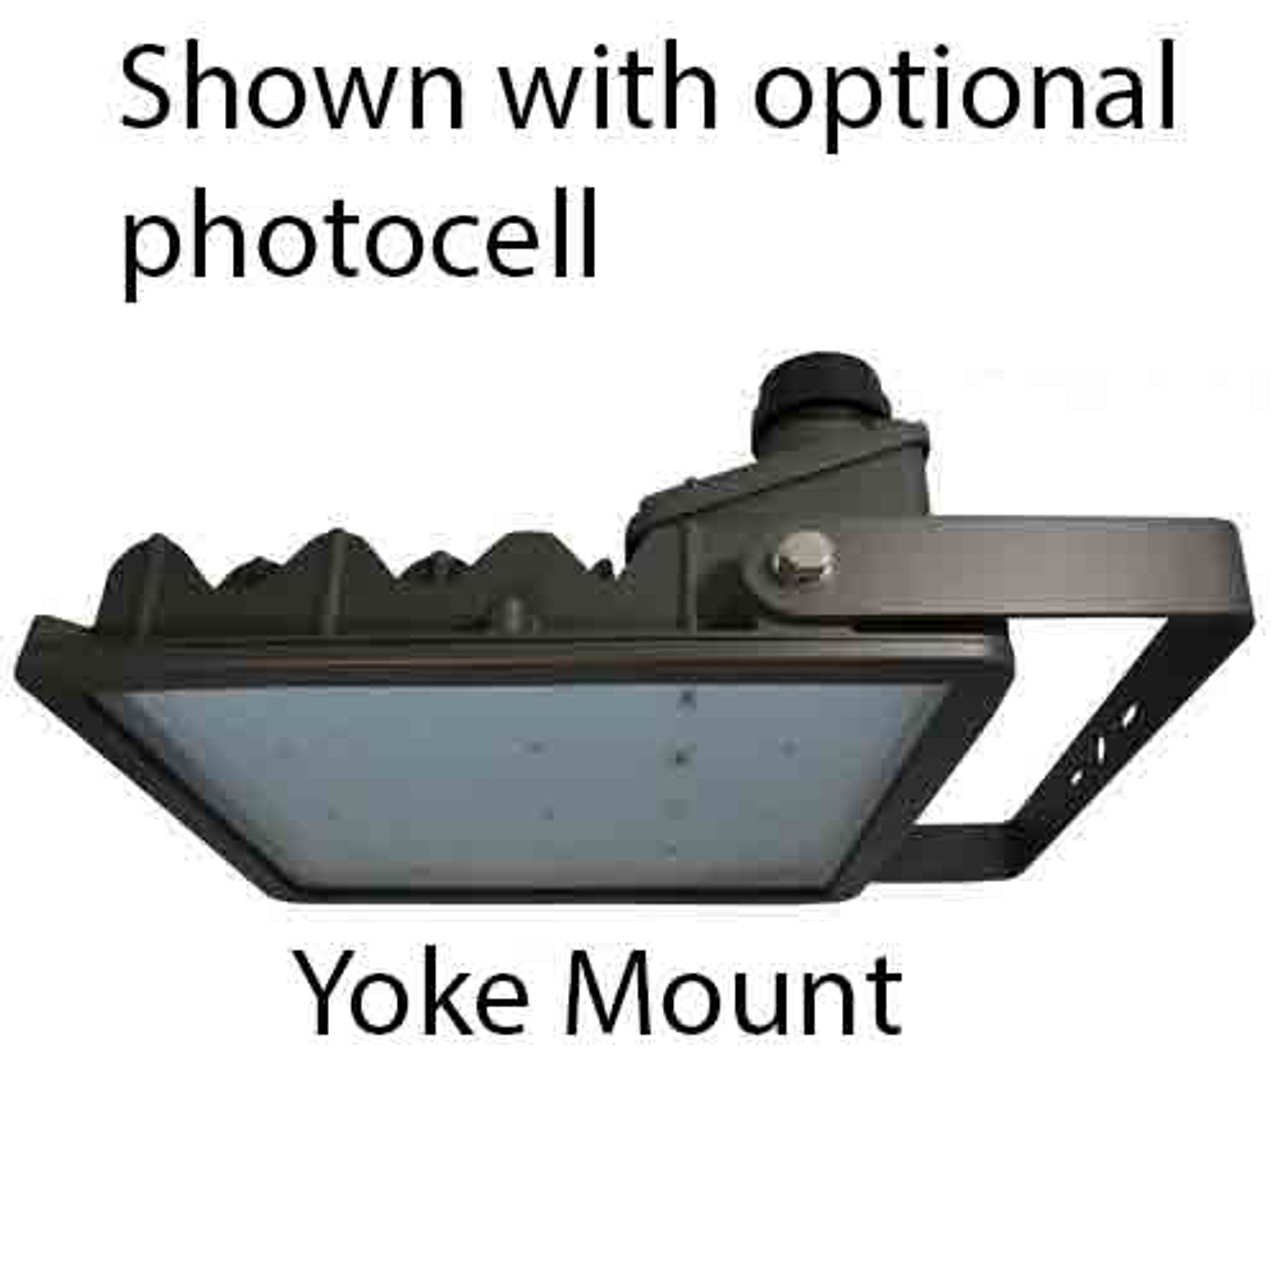 262 Watt LED Area Light 26,264 Lumens with yoke mount